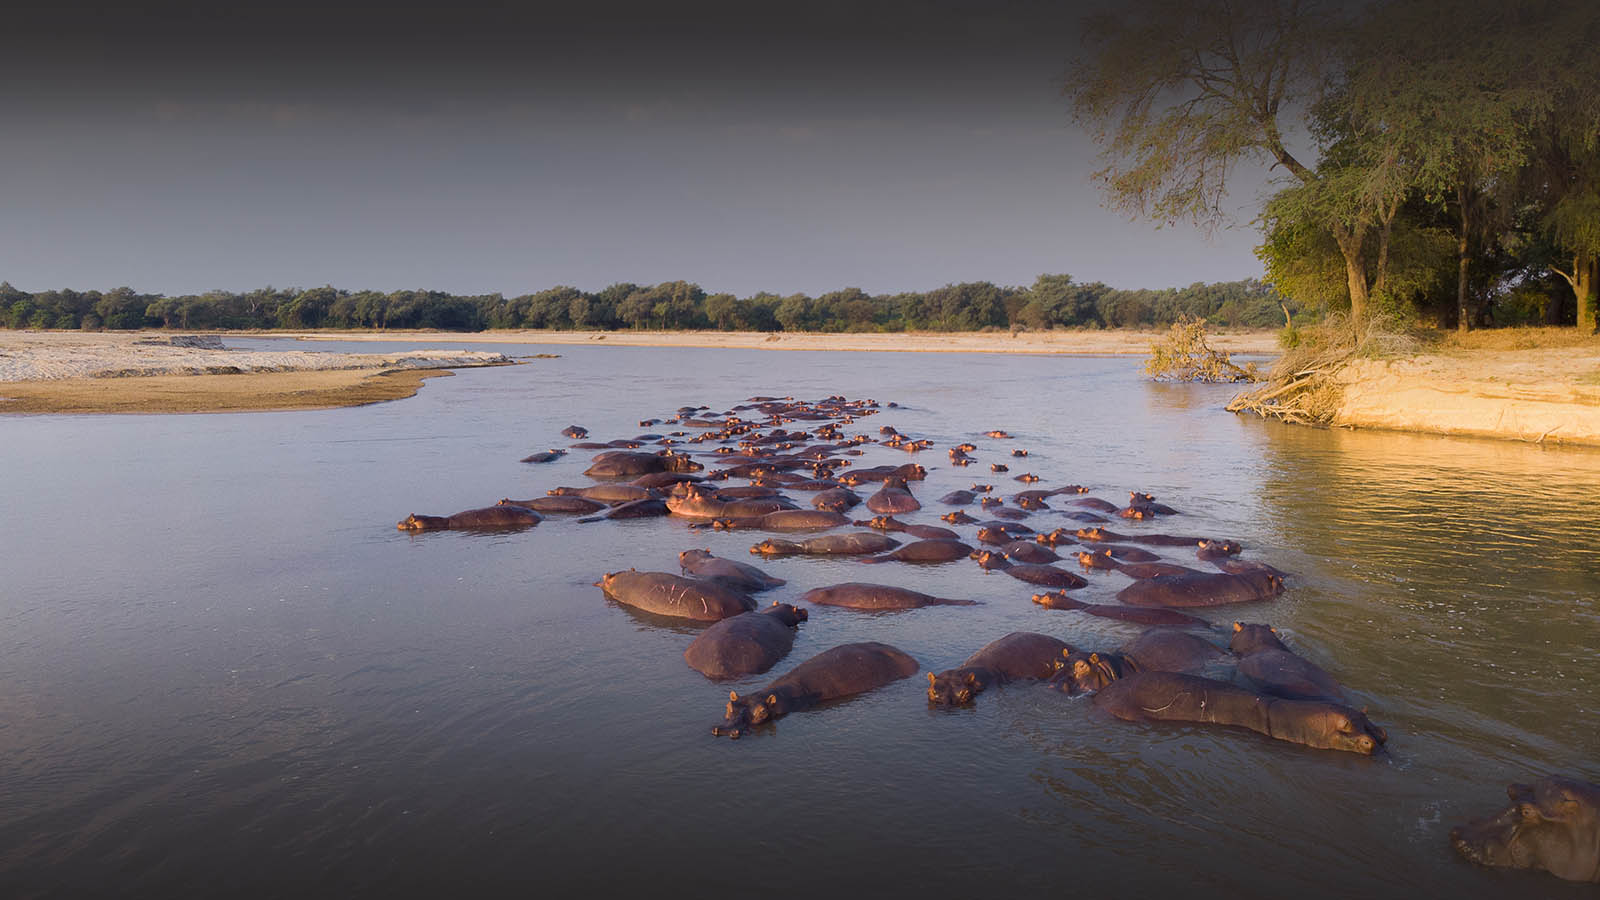 takwela-camp-north-luangwa-national-park-lodges-zambia-in-style-rustic-chic-hippo